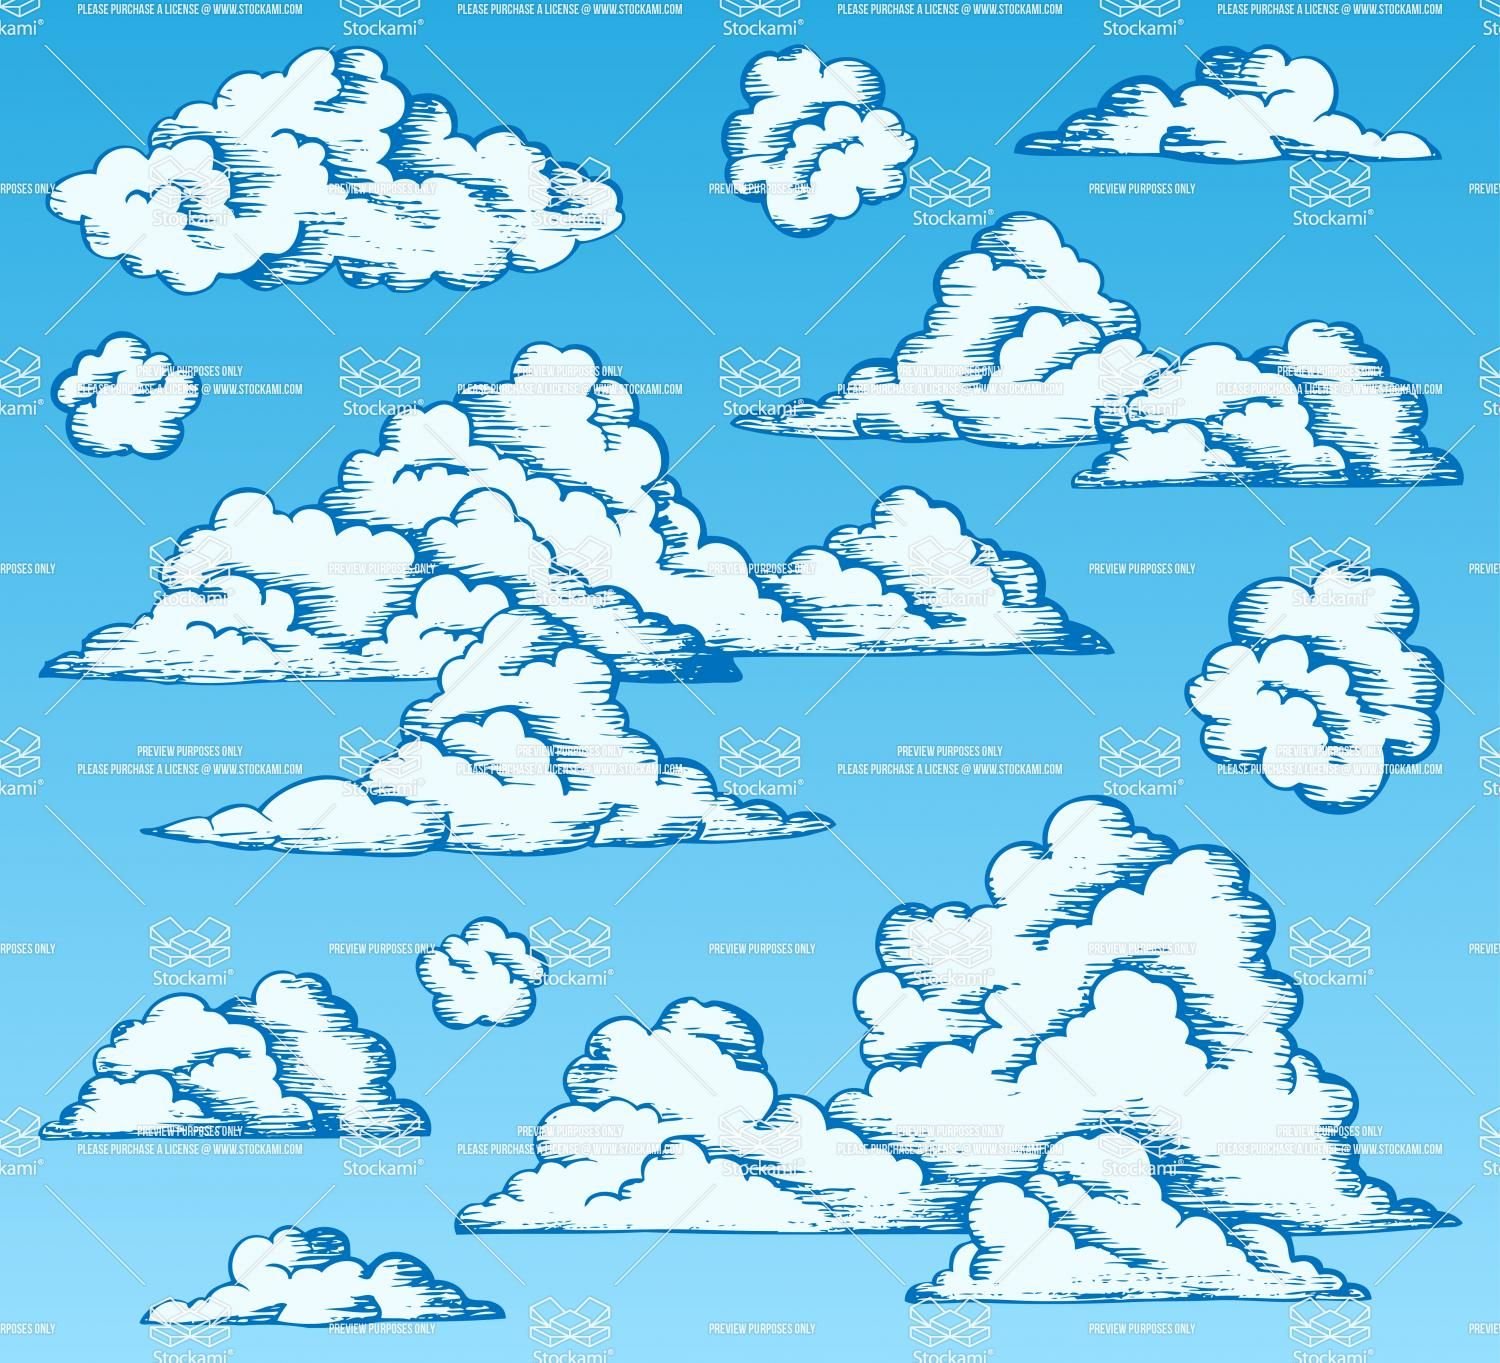 Clouds Drawings On Blue Sky 1 Cloud Drawing Clouds Cloud Illustration